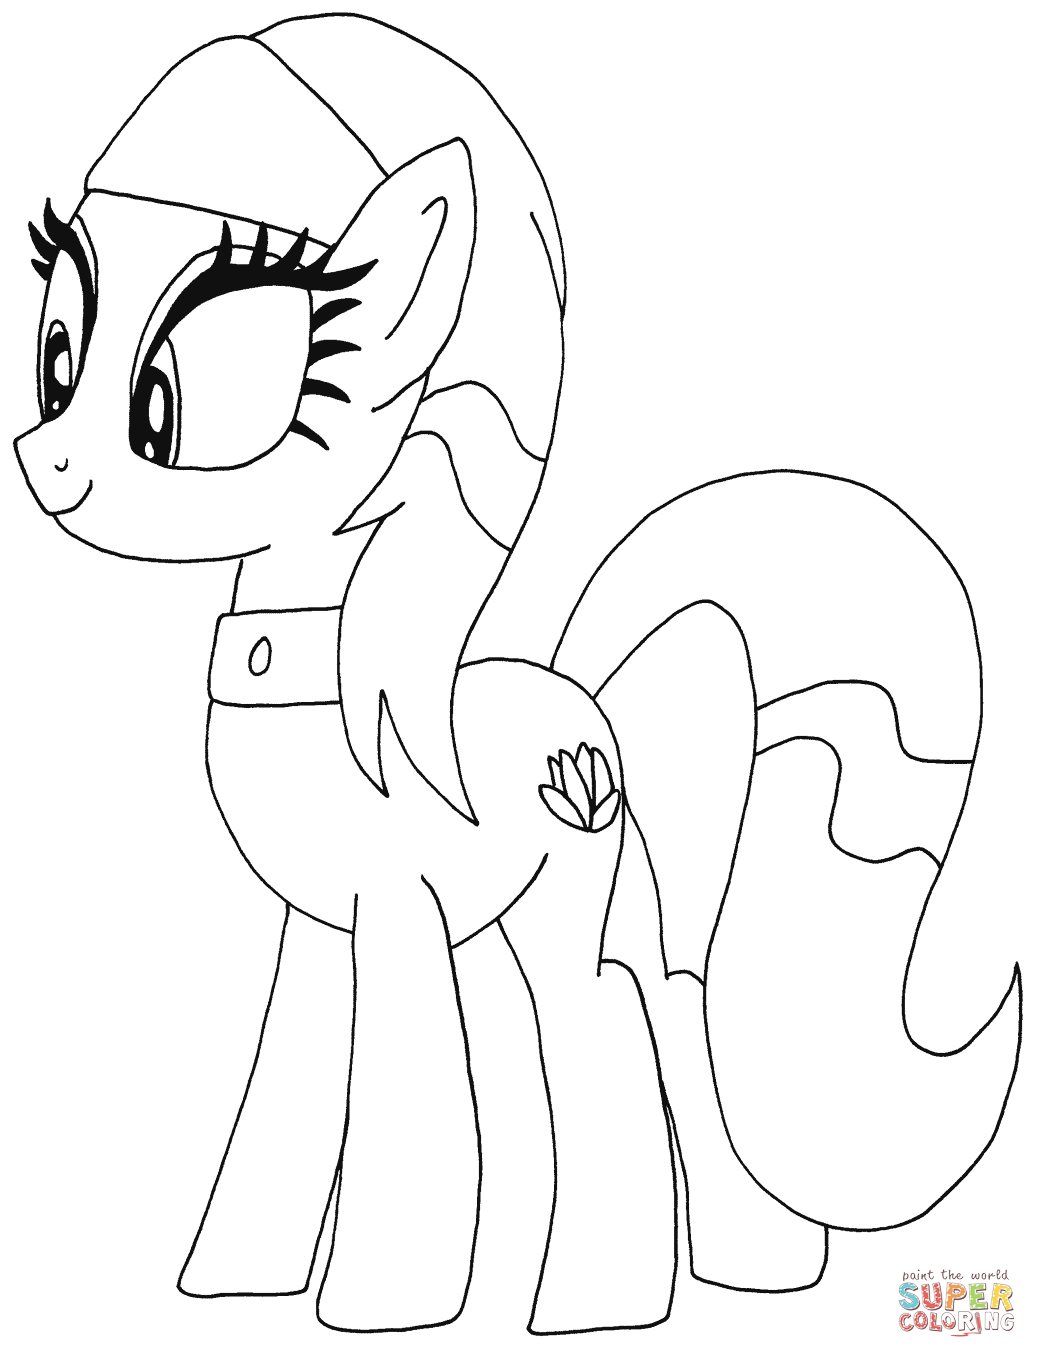 Drawn my little pony colouring picture Little coloring Lotus Free Pony